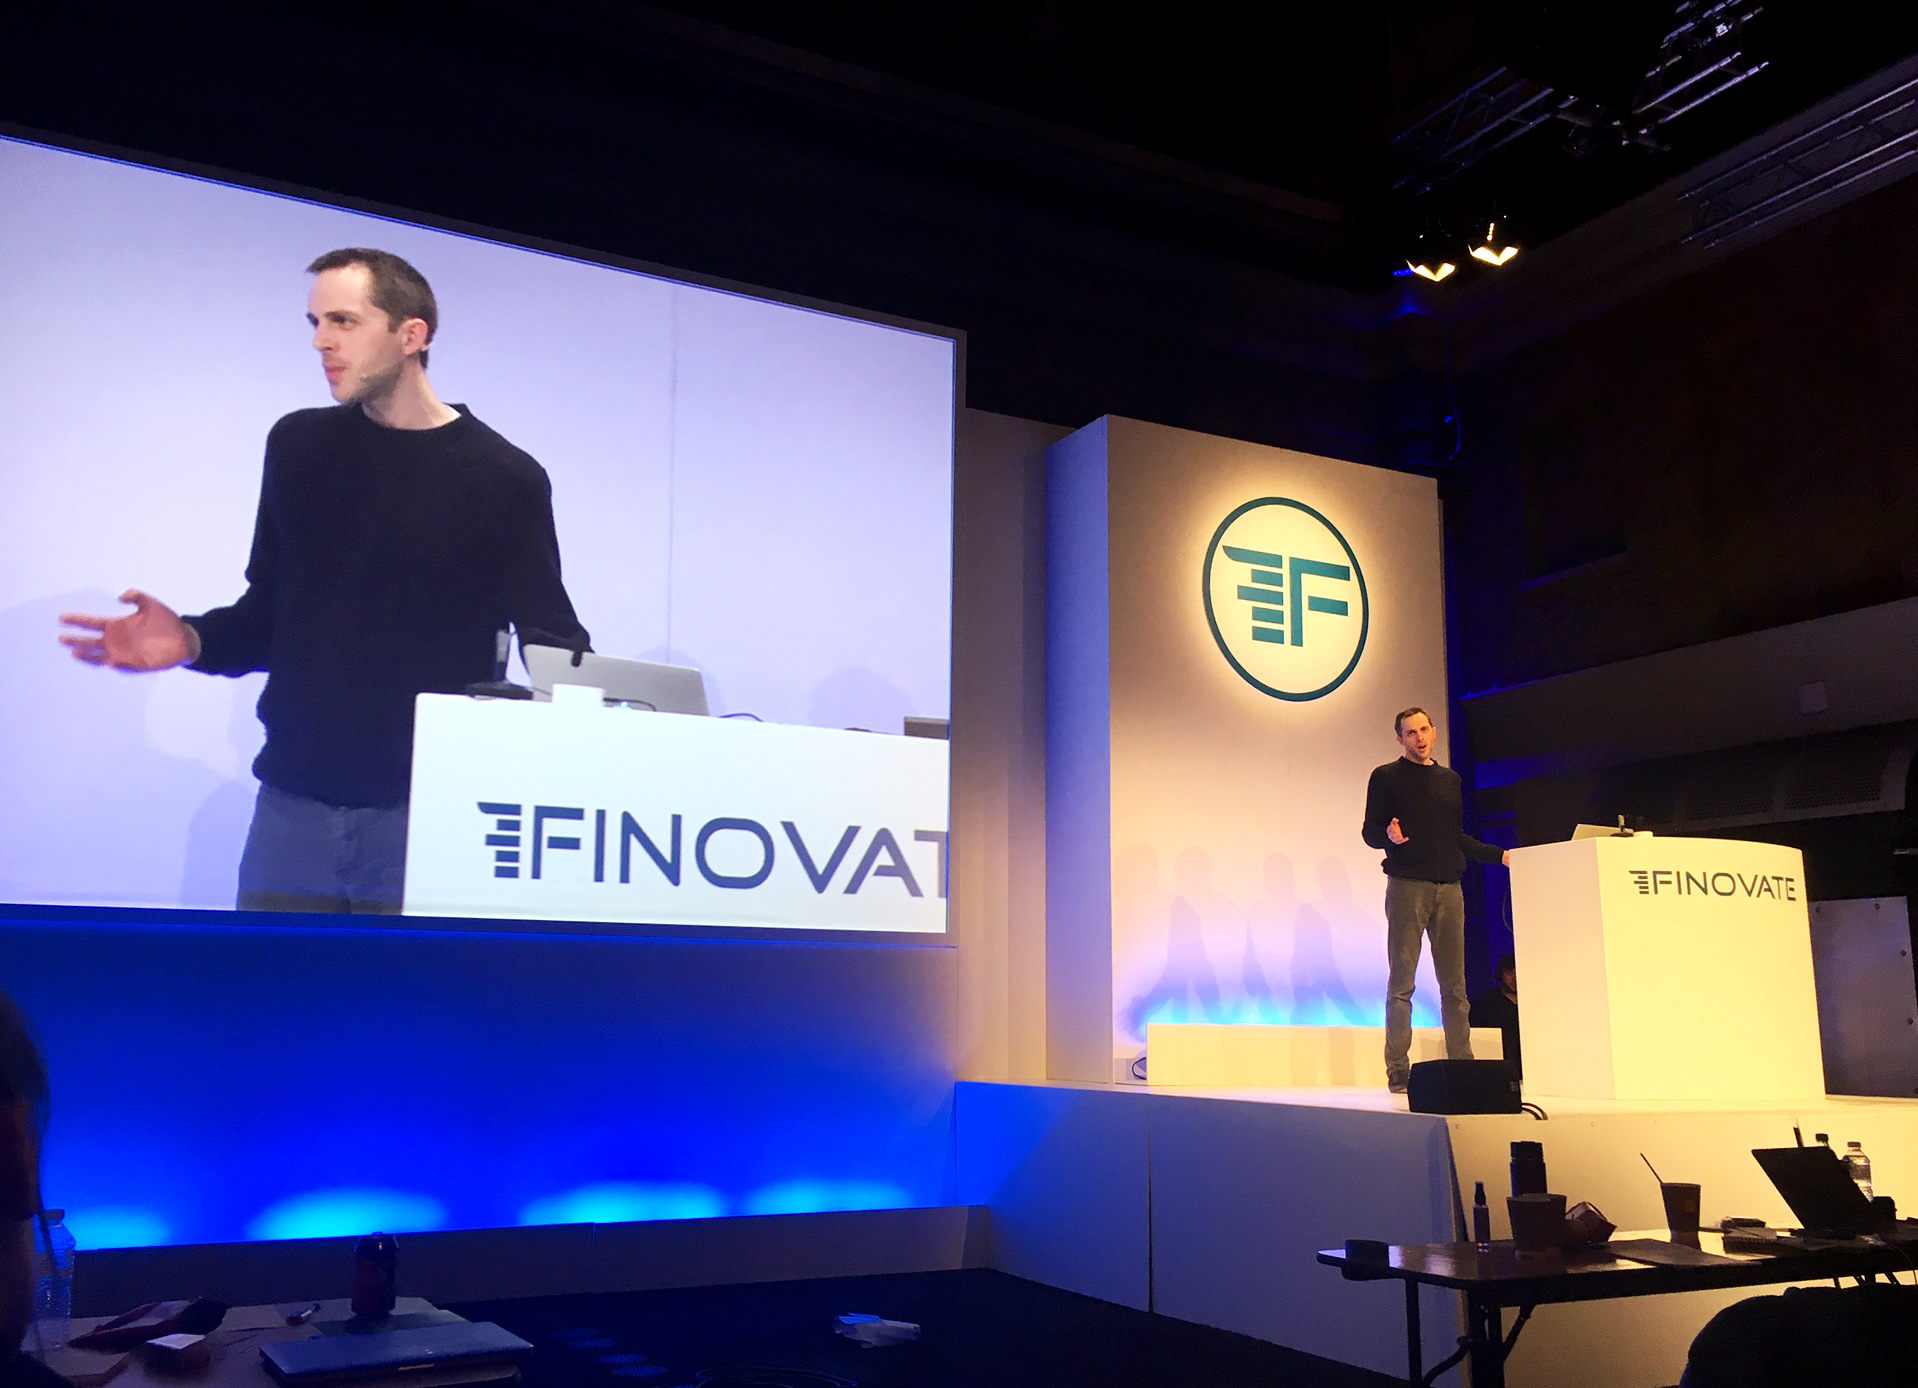 Dave Tonge speaking at Finovate 2017